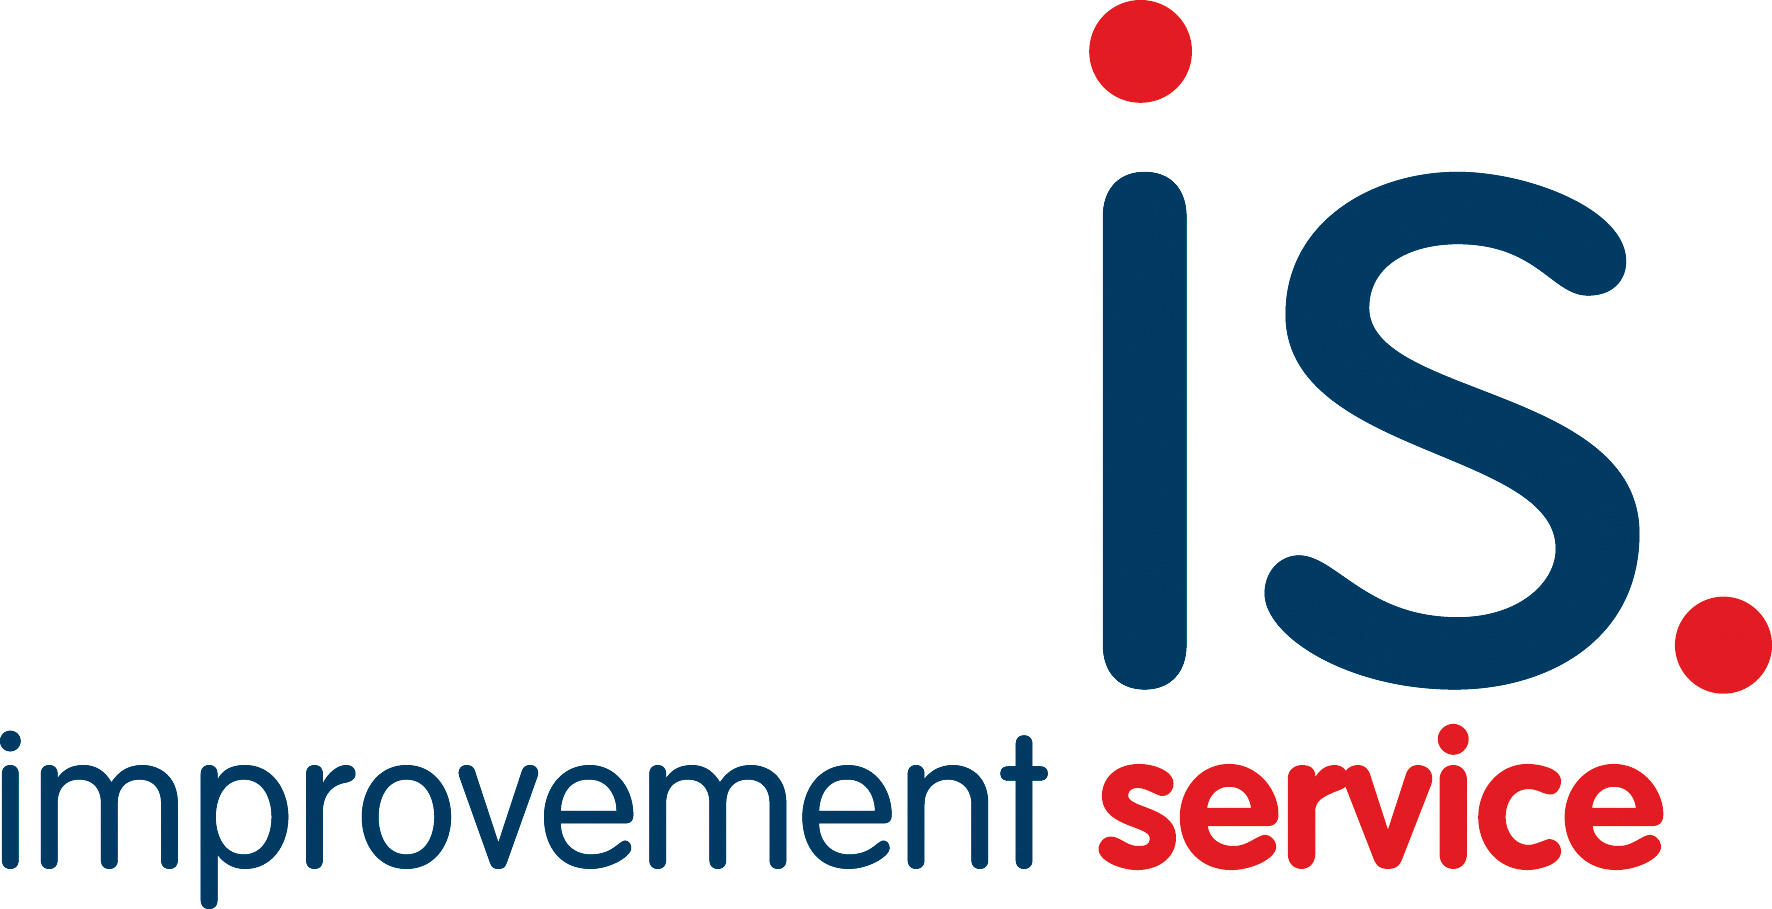 Improvement Service logo